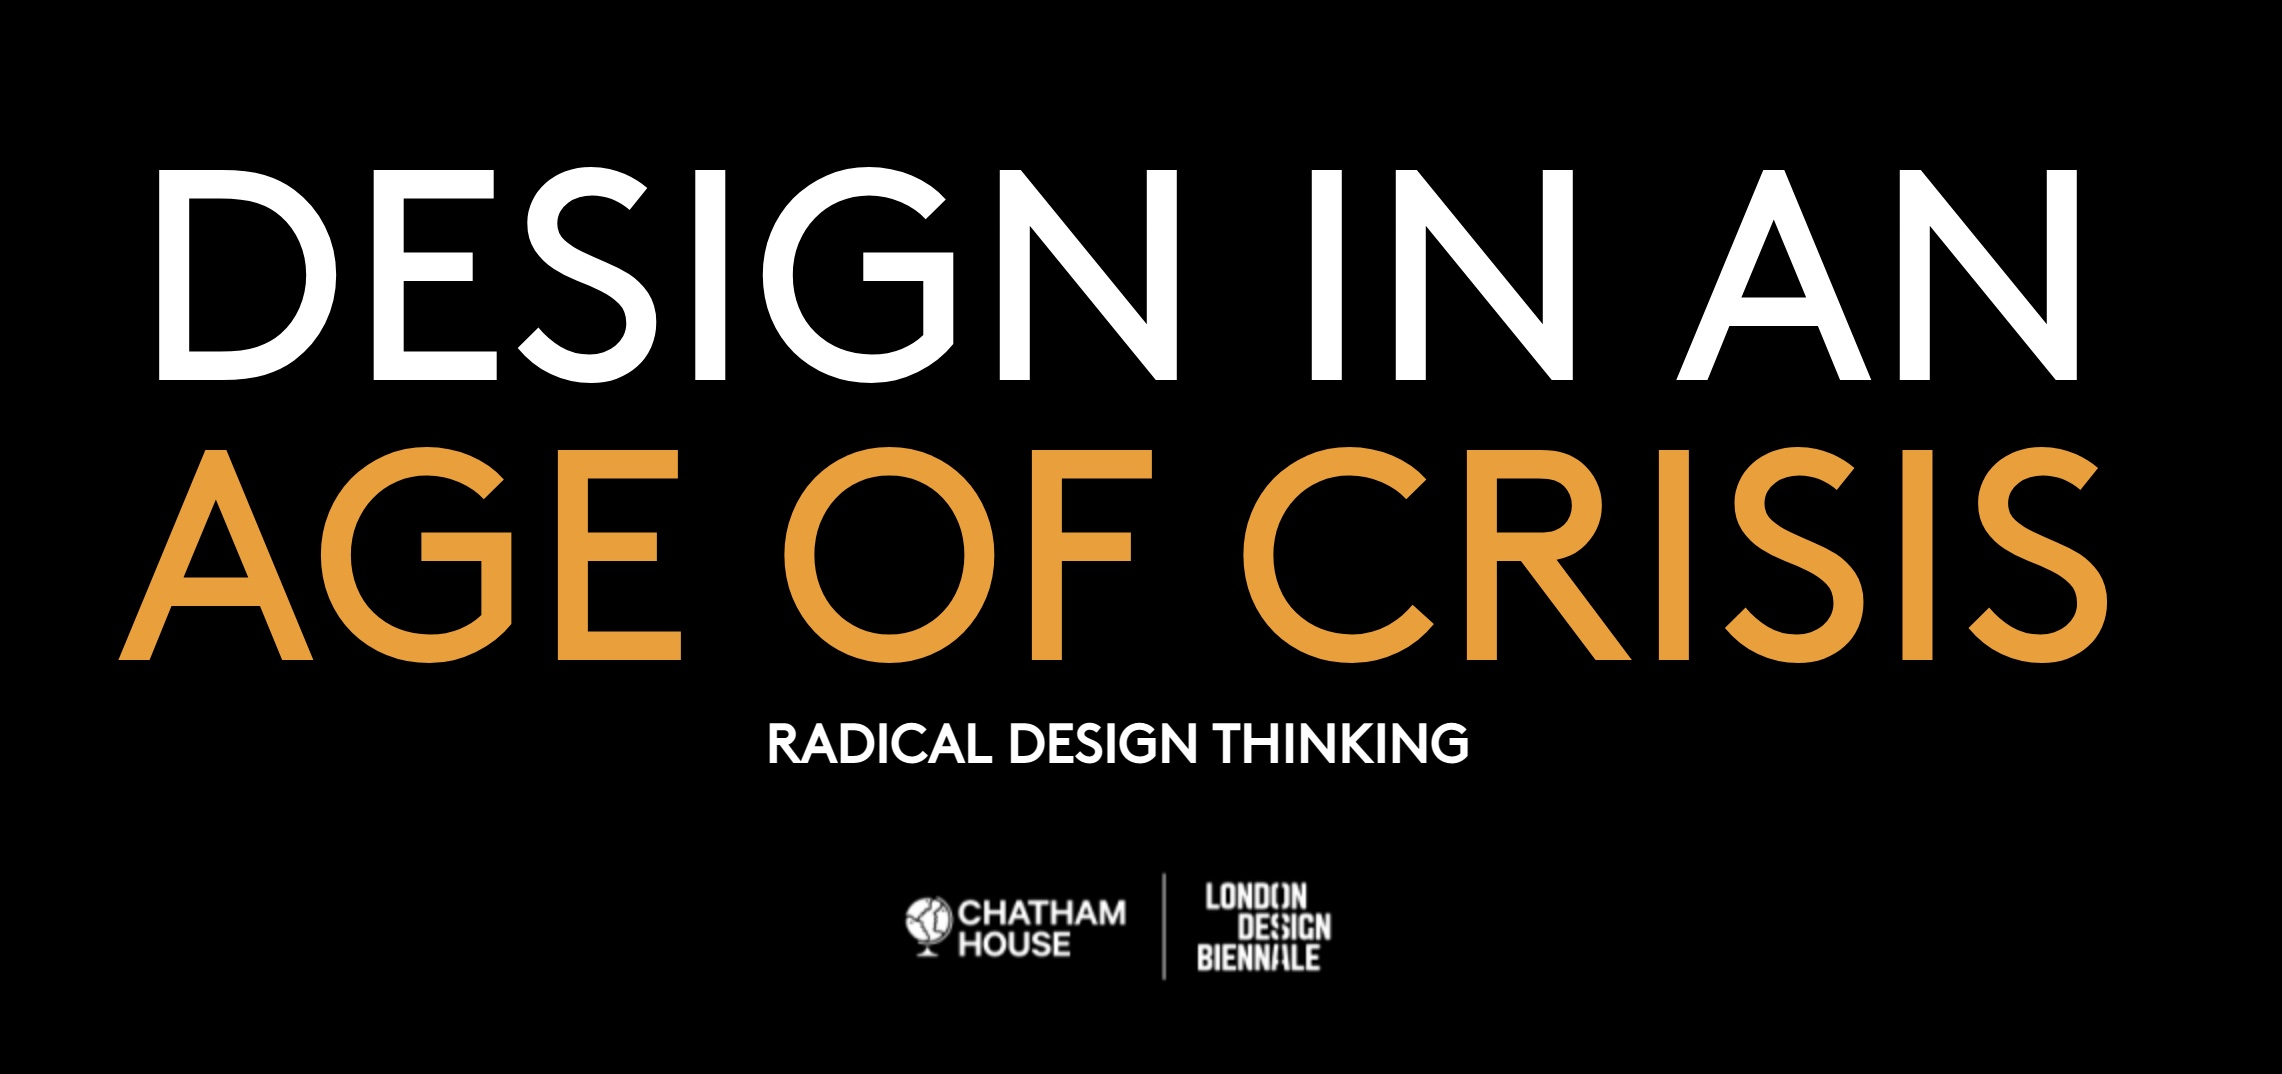 Design in an Age of Crisis